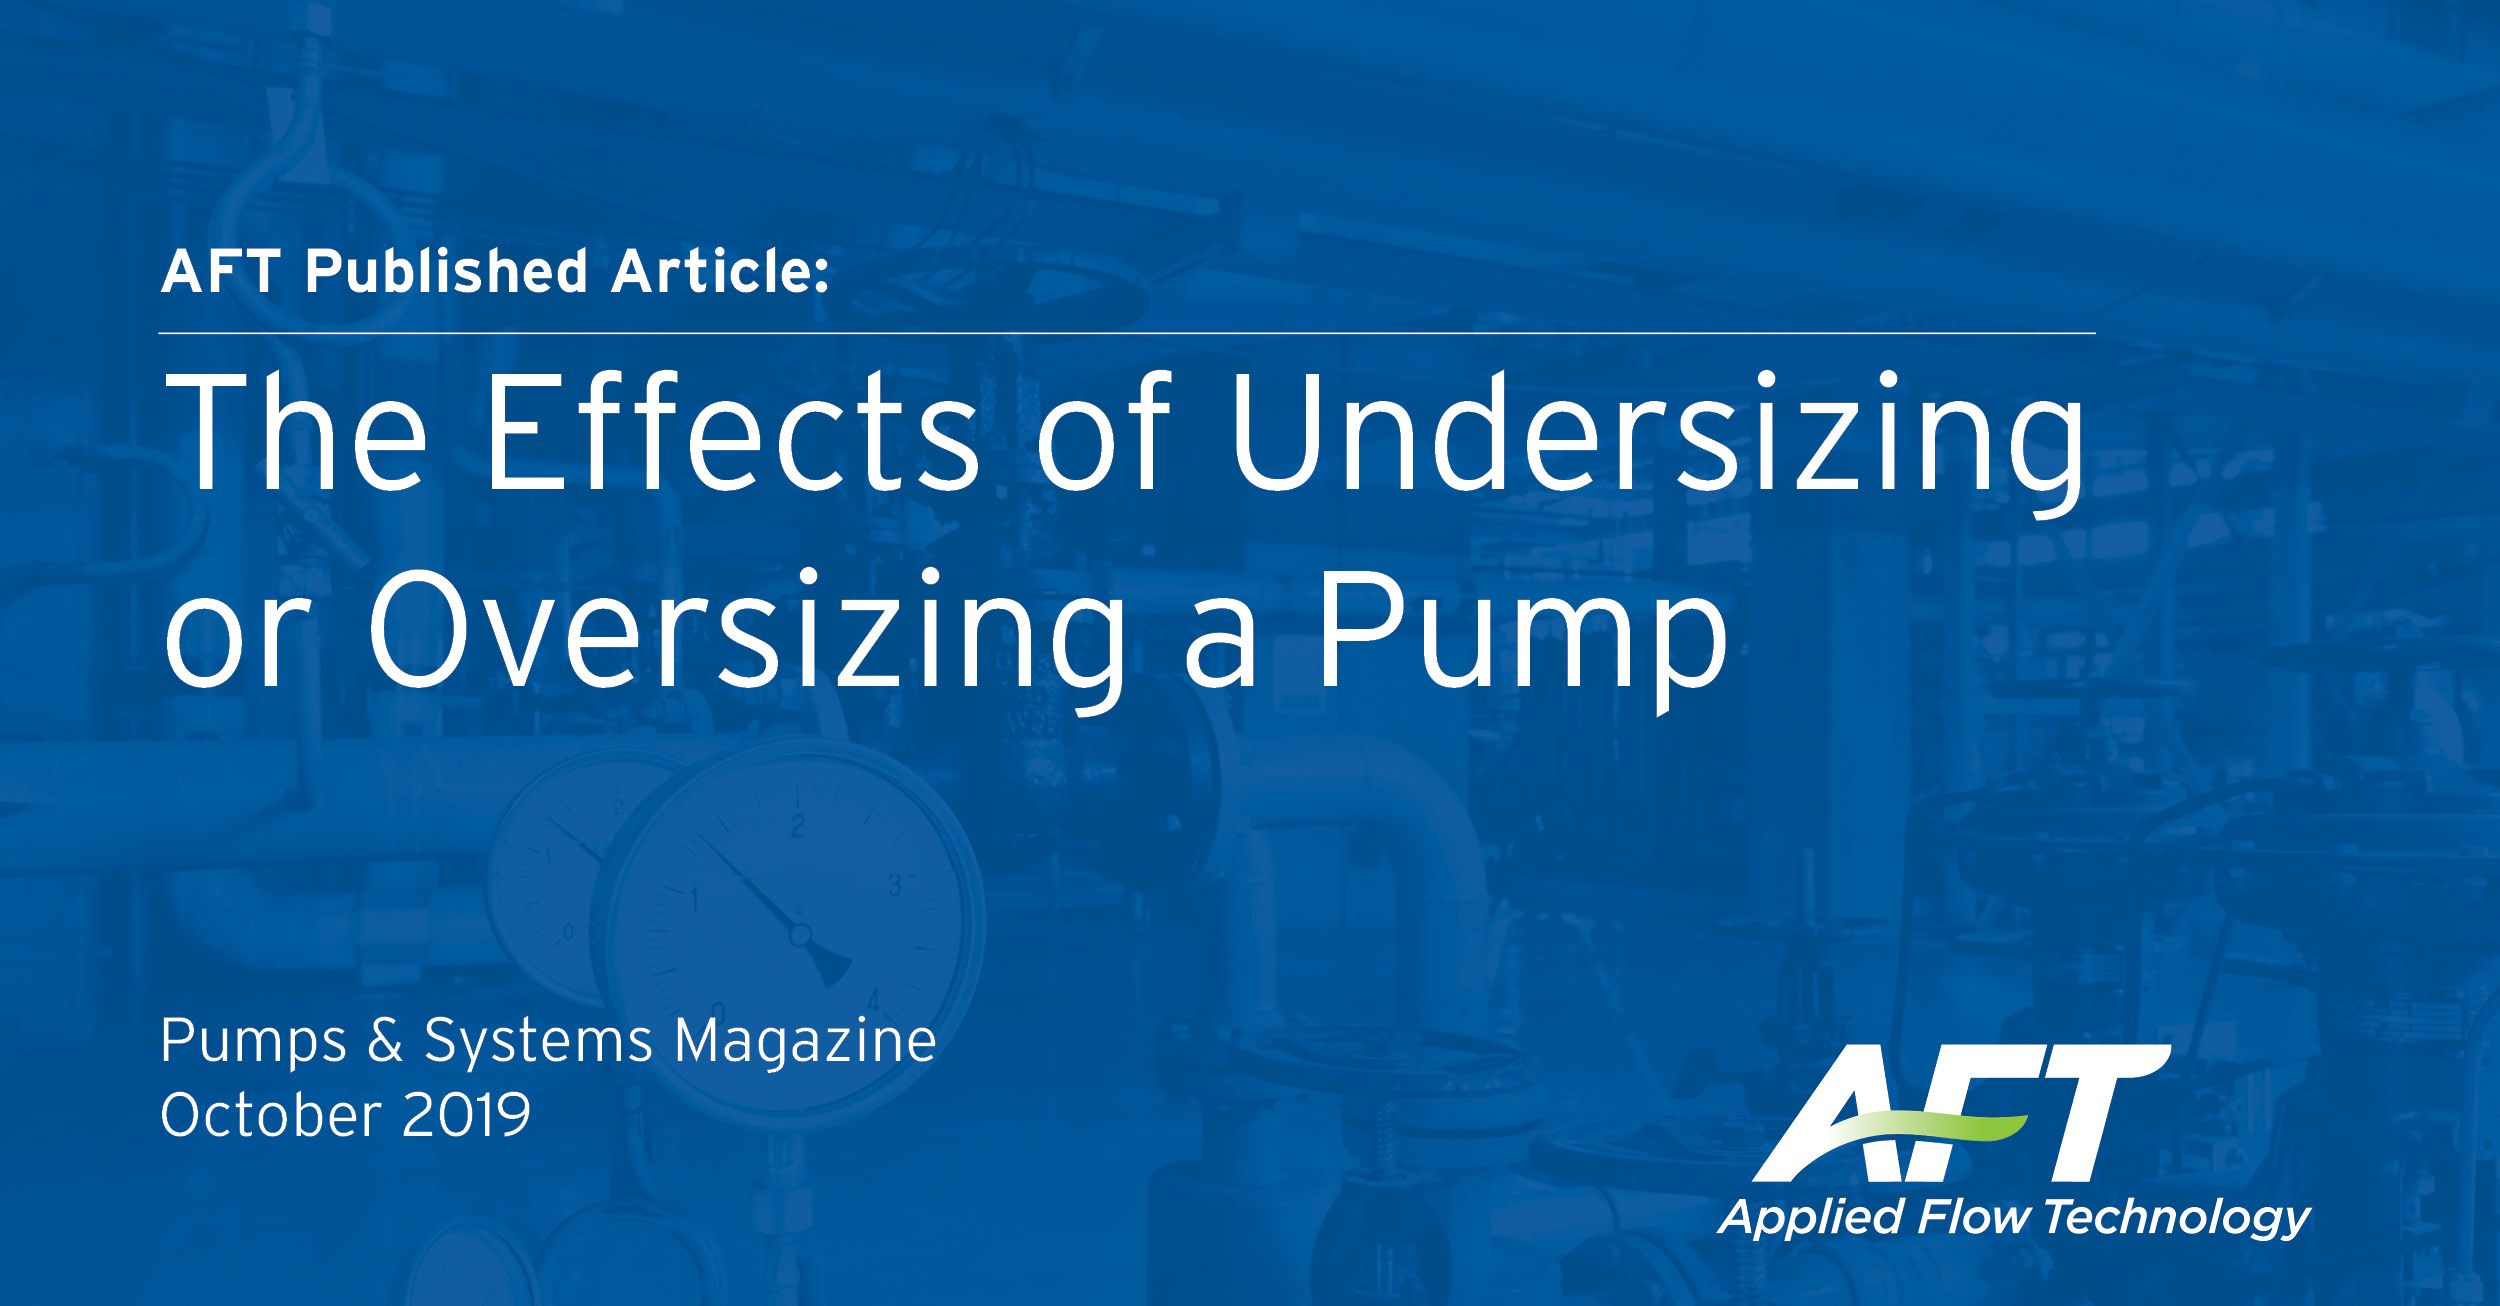 Undersizing or Oversizing Pumps - Sizing Pumps for the Best Efficiency Point (BEP)